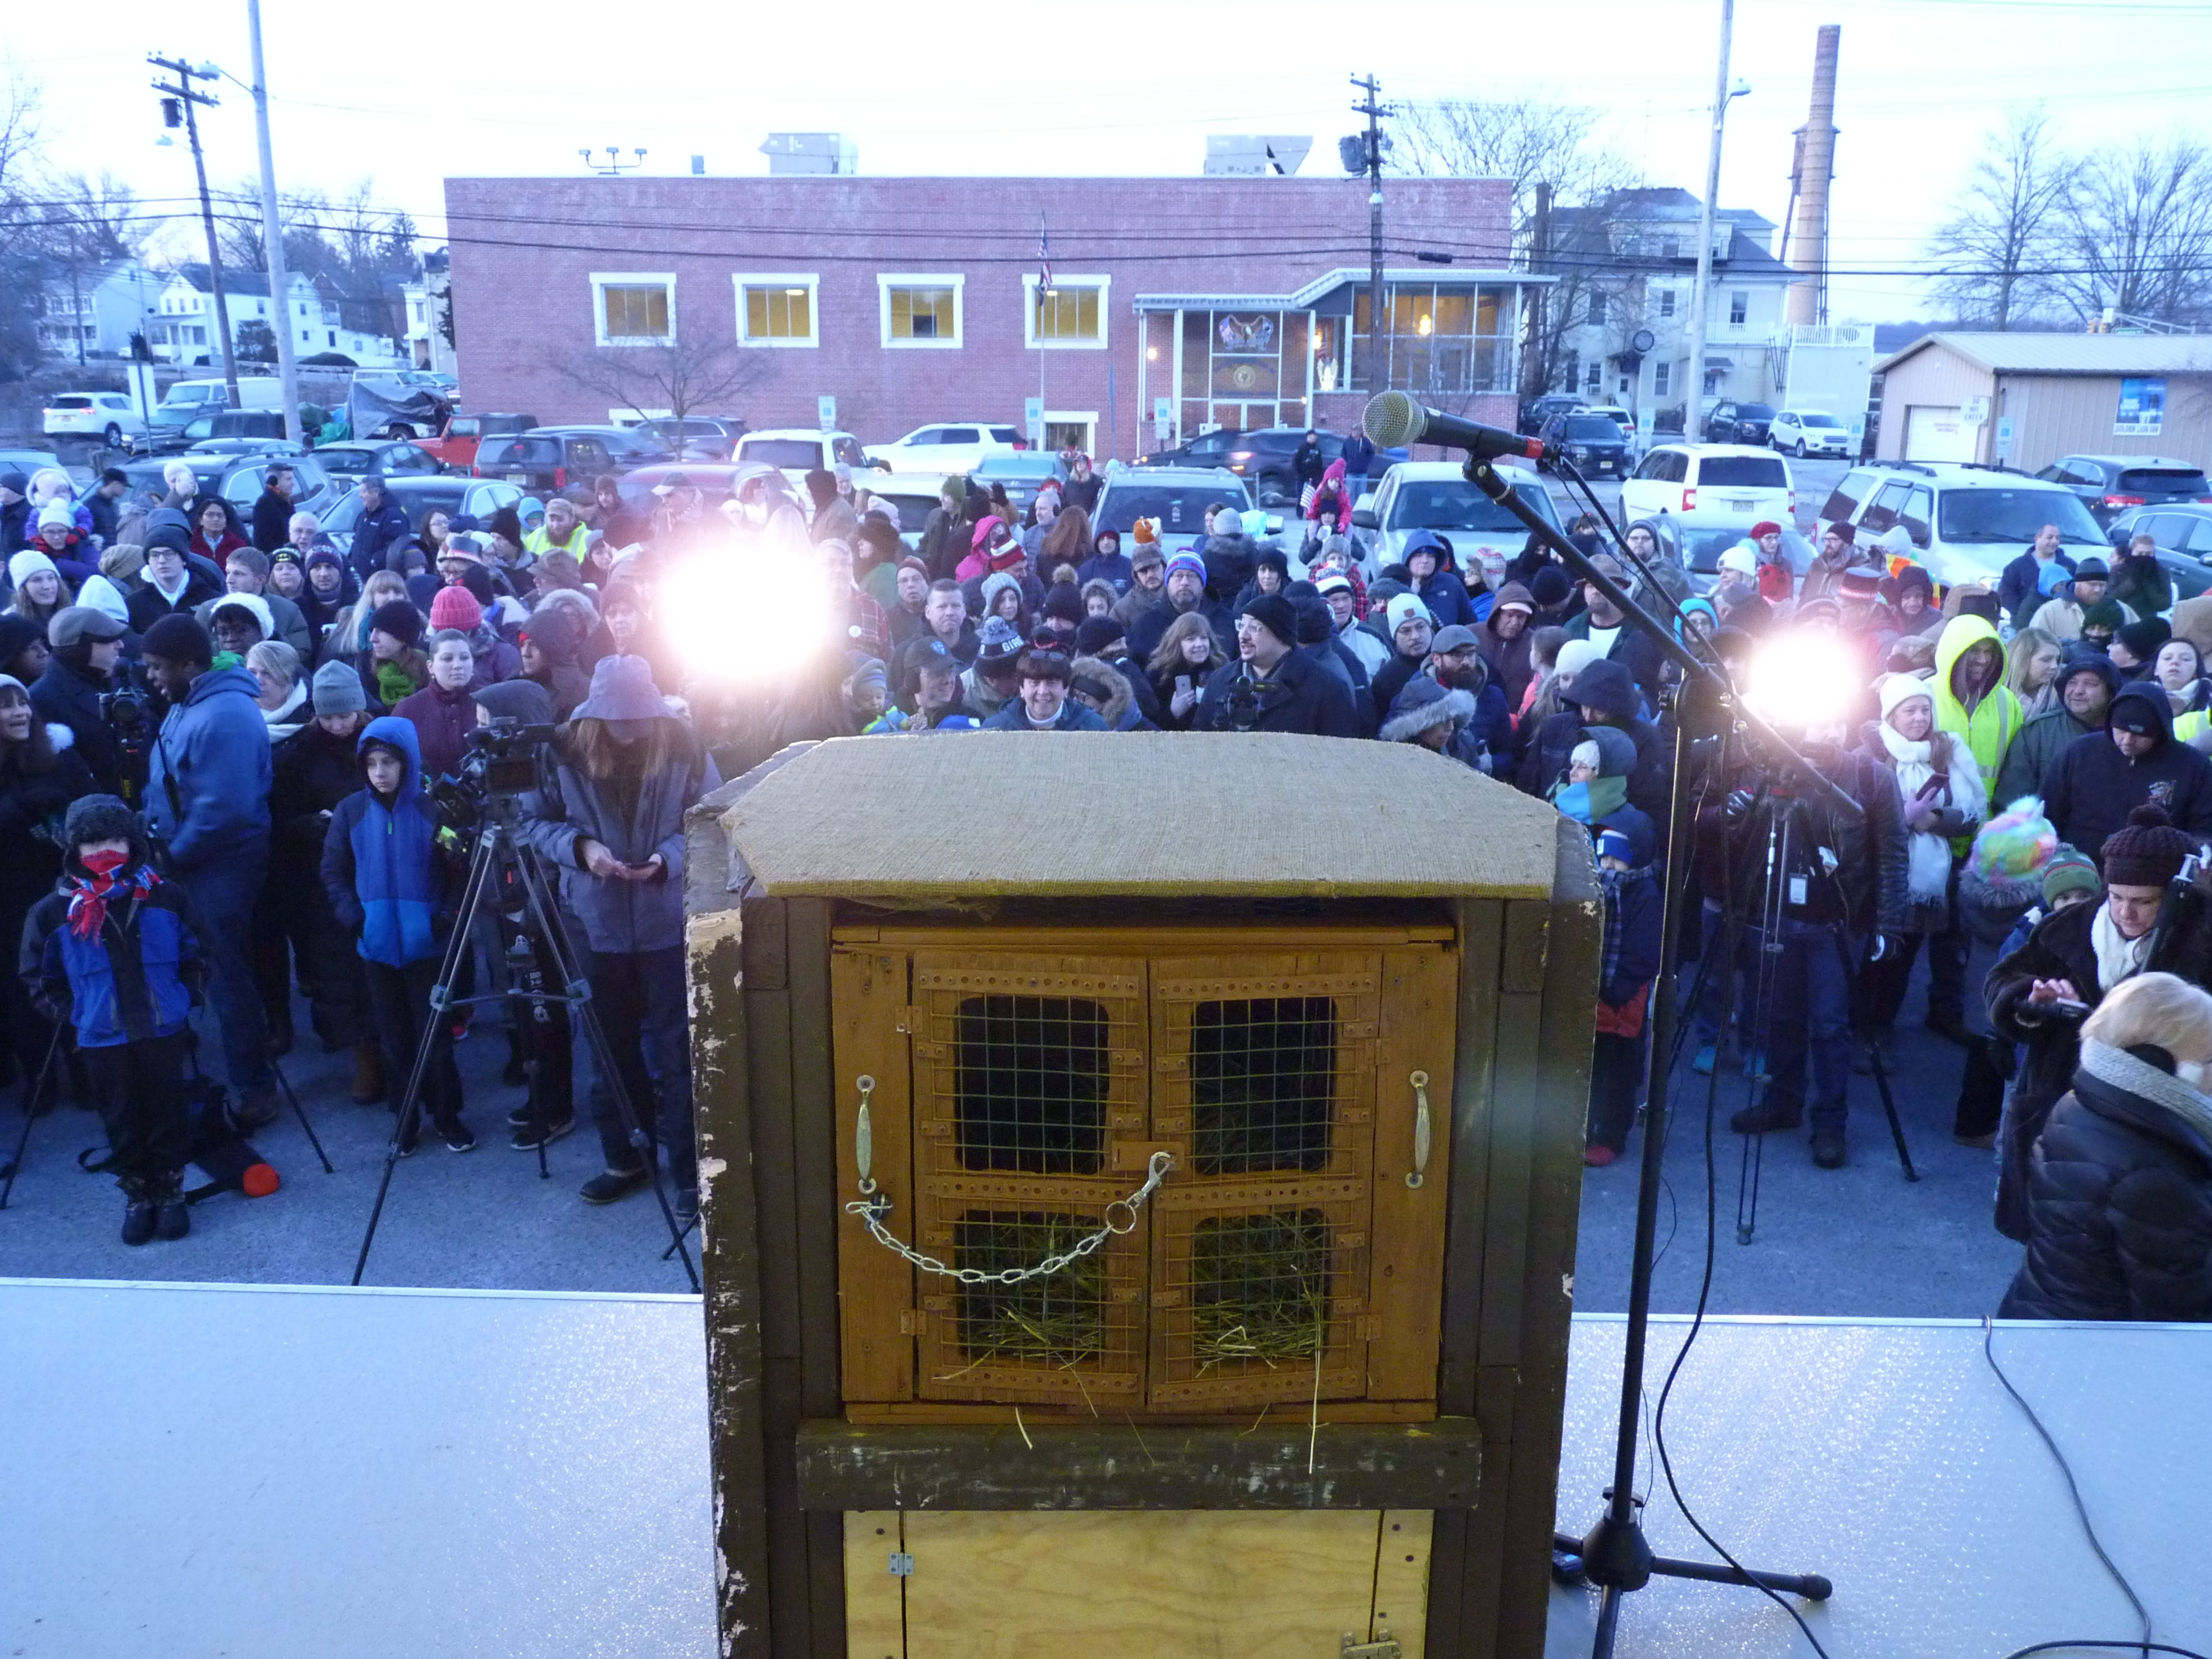 The crowd gathered for Milltown Mel's prediction in Milltown on Groundhog Day.